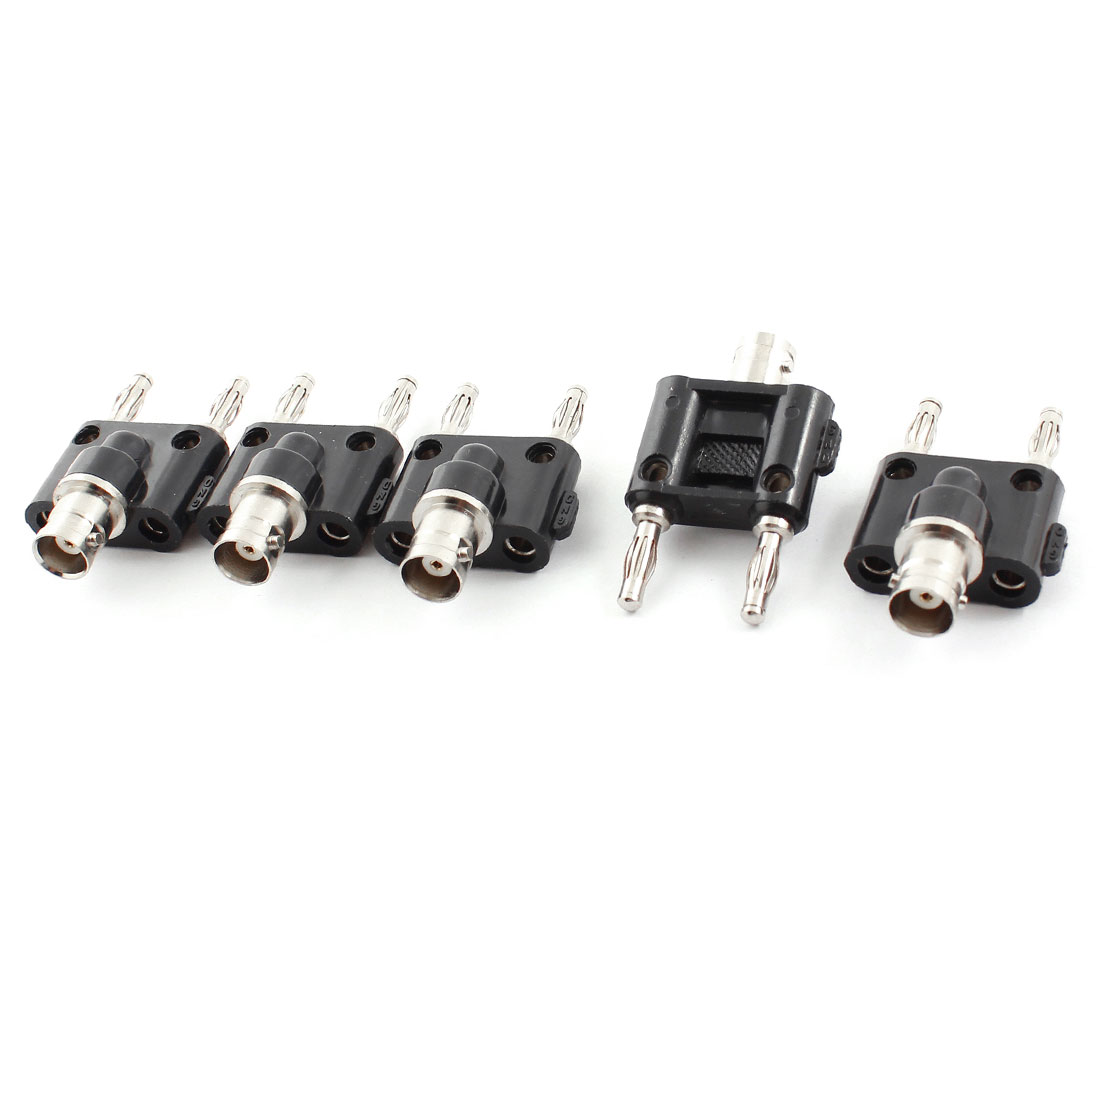 CCTV Camera BNC Female Jack to Dual Stacking Banana Plug Connector 5pcs